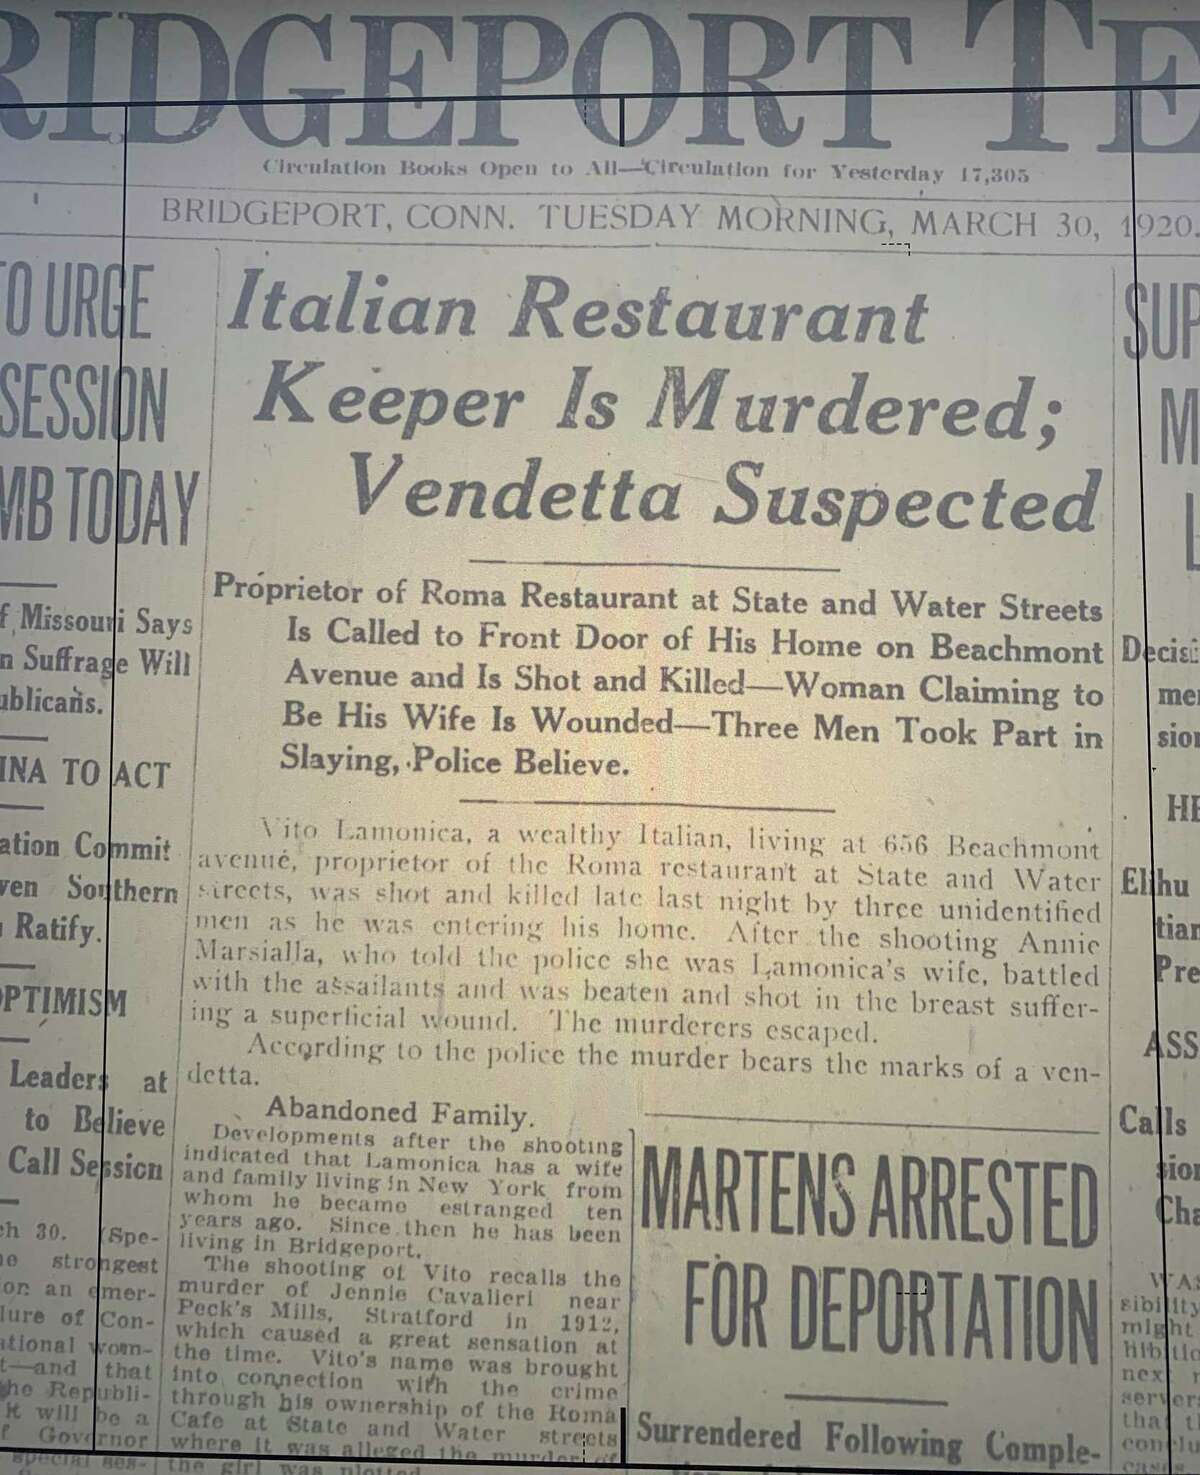 A photo of microfilm of the Bridgeport Telegram from the morning of Tuesday, March 30, 1929, the morning after Vito Lamonica was shot and killed in Bridgeport, Conn. March 29, 2020, marks 100 years since he was killed. His case remains open.